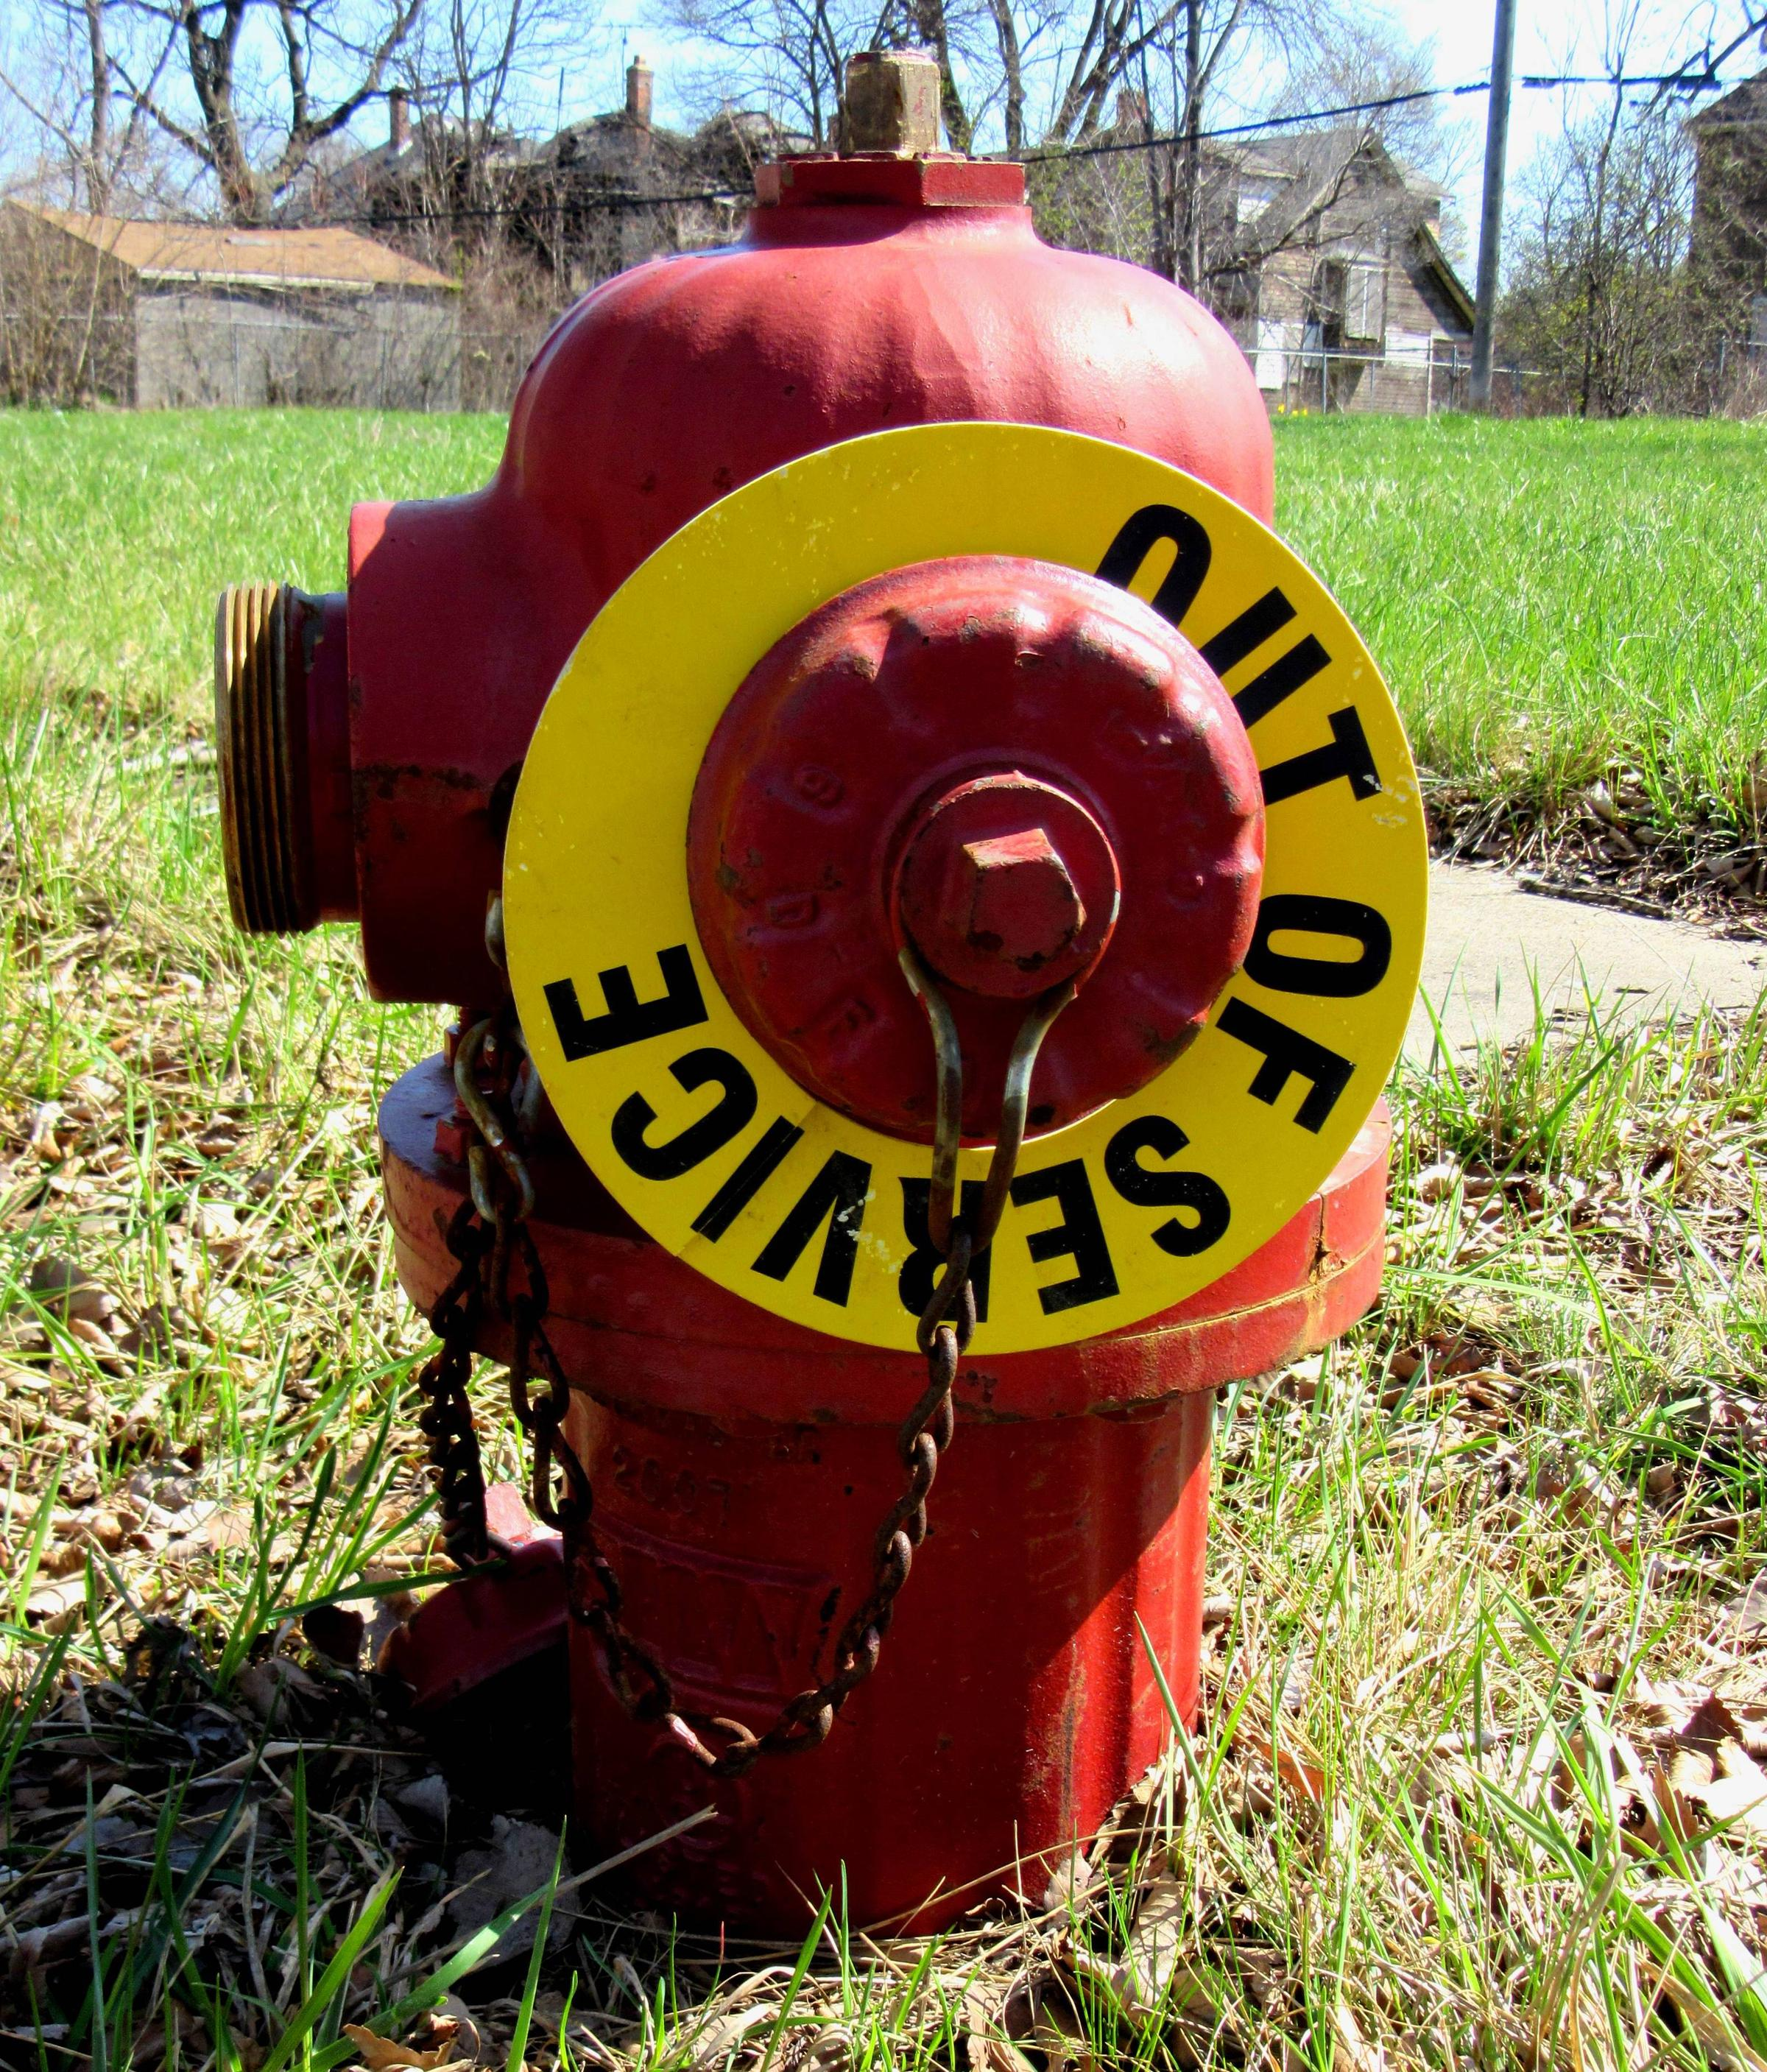 Broken Fire Hydrants Contribute To More Detroit Buildings